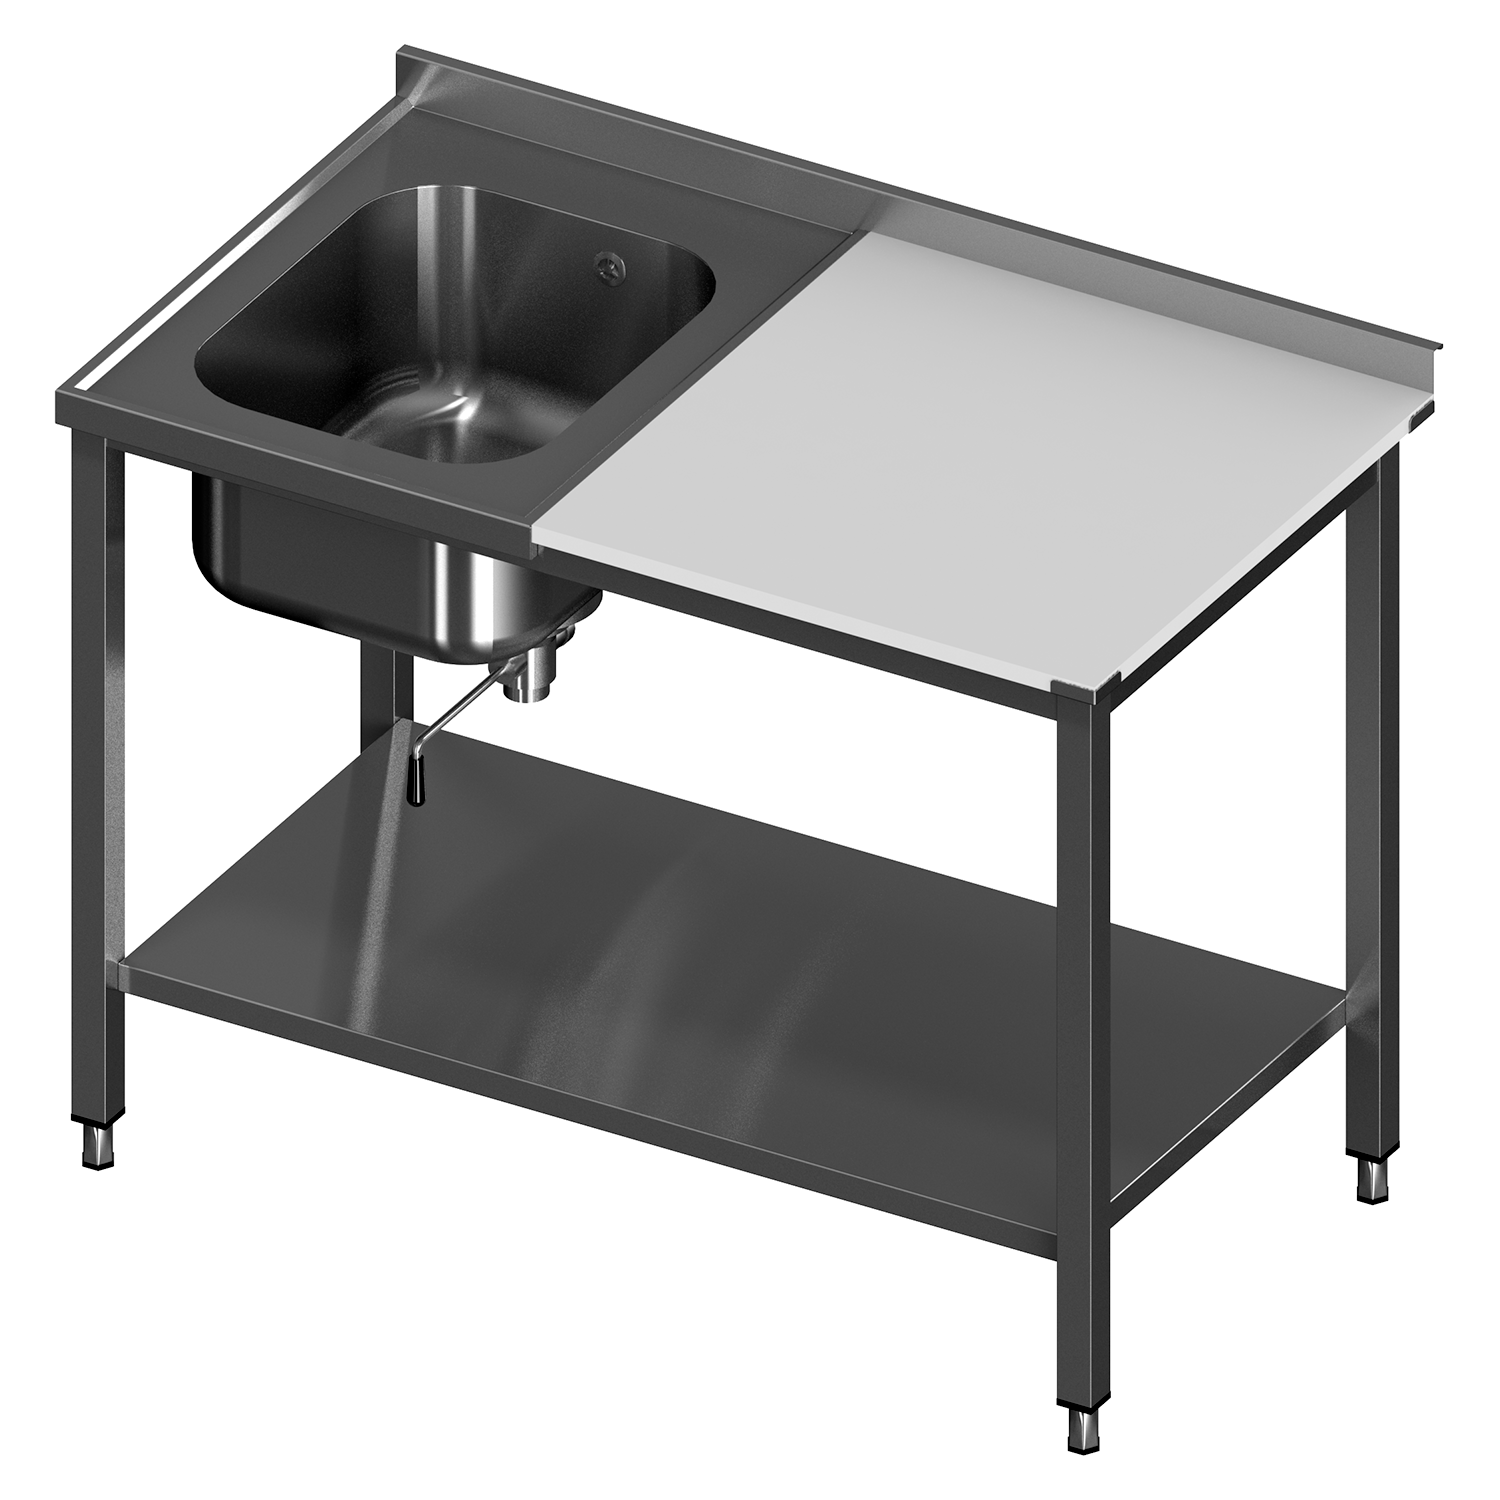 TABLE TO DISHWASHER WITH BIG SINK AND FRAME FOR MODULAR SHELVES